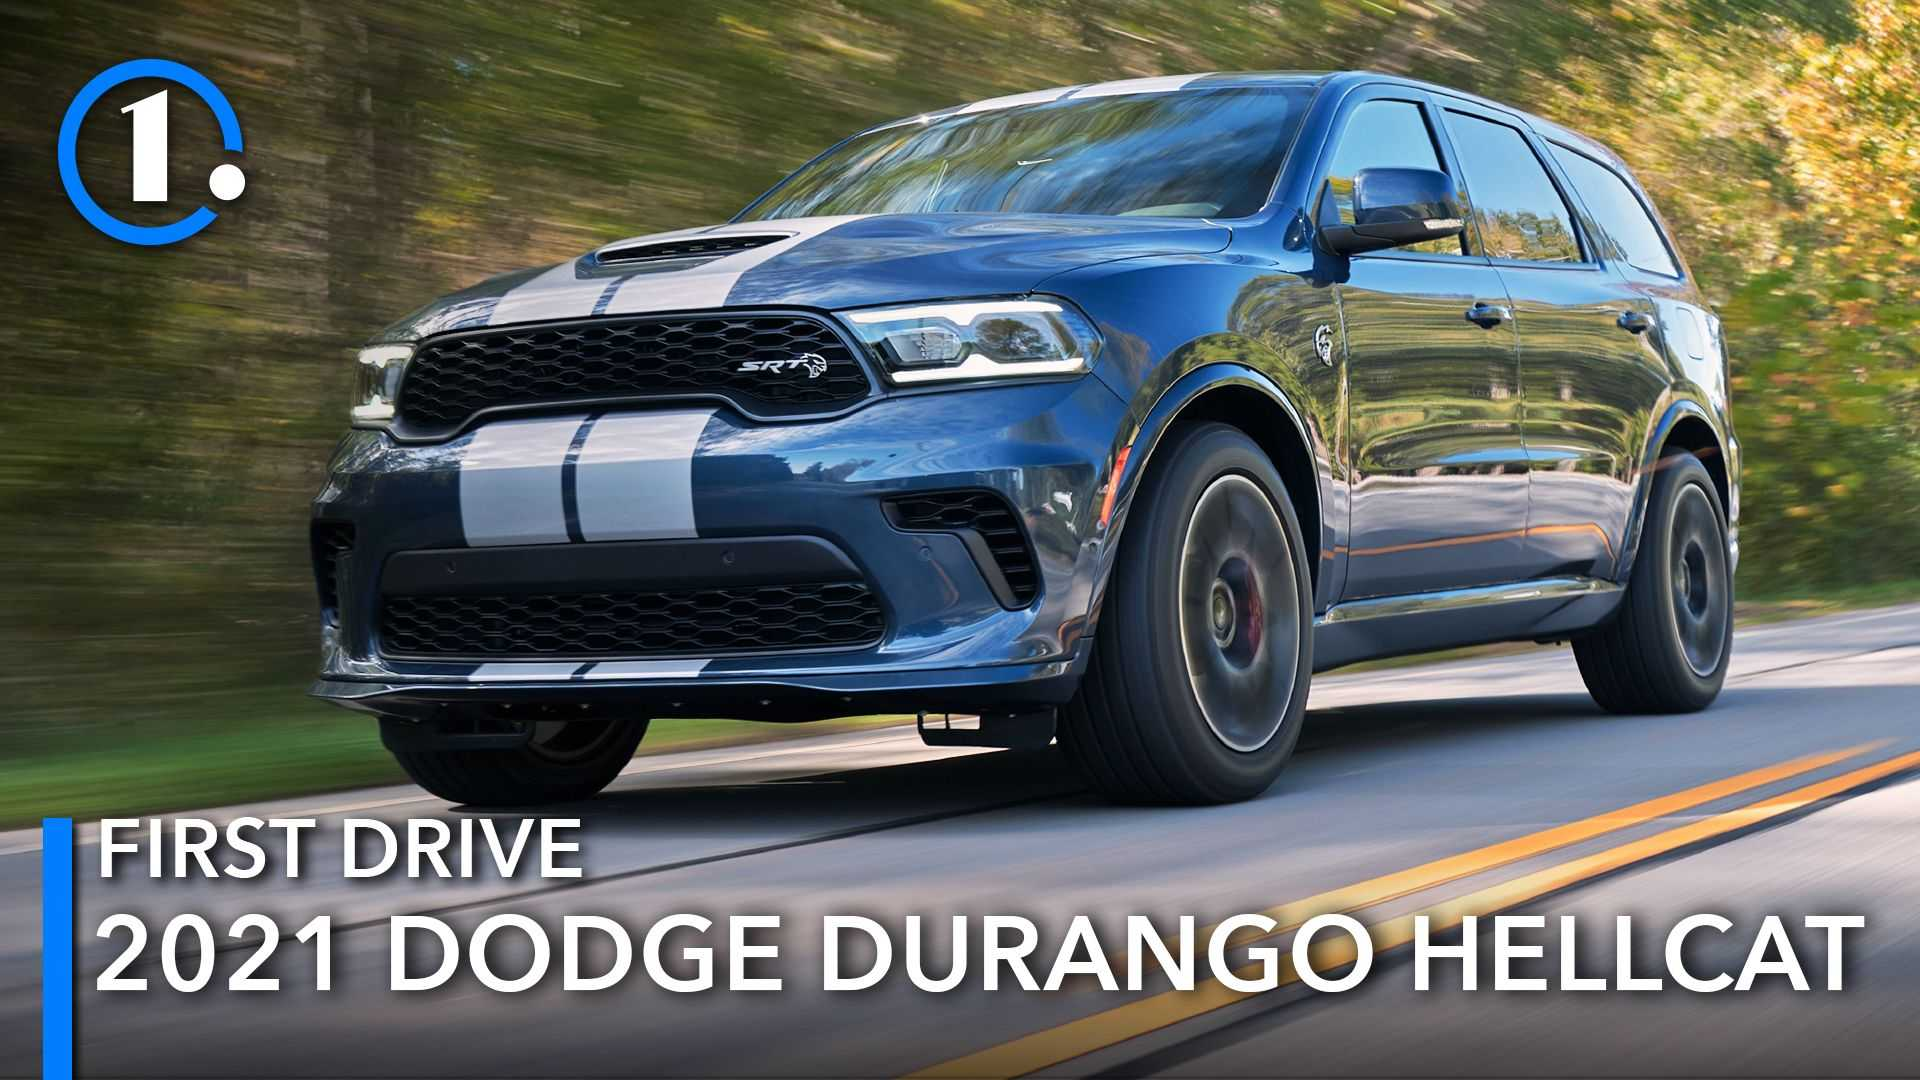 2021 Dodge Durango Hellcat First Drive Review: They Actually Did It